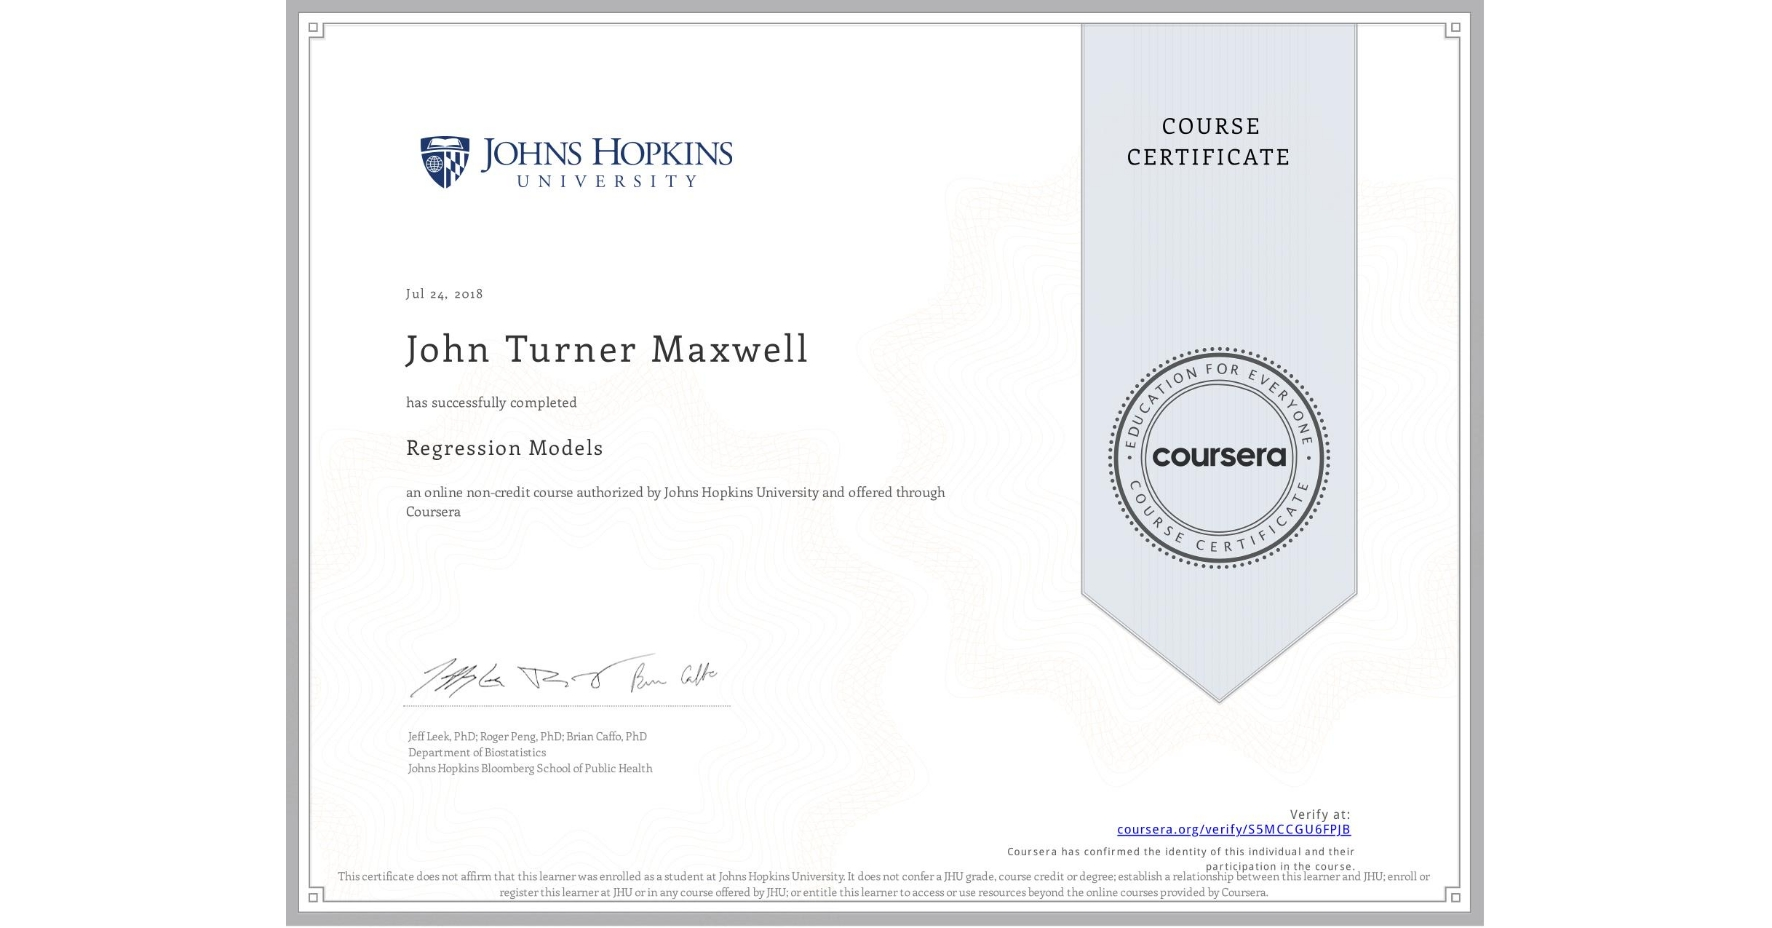 View certificate for John Turner Maxwell, Regression Models, an online non-credit course authorized by Johns Hopkins University and offered through Coursera